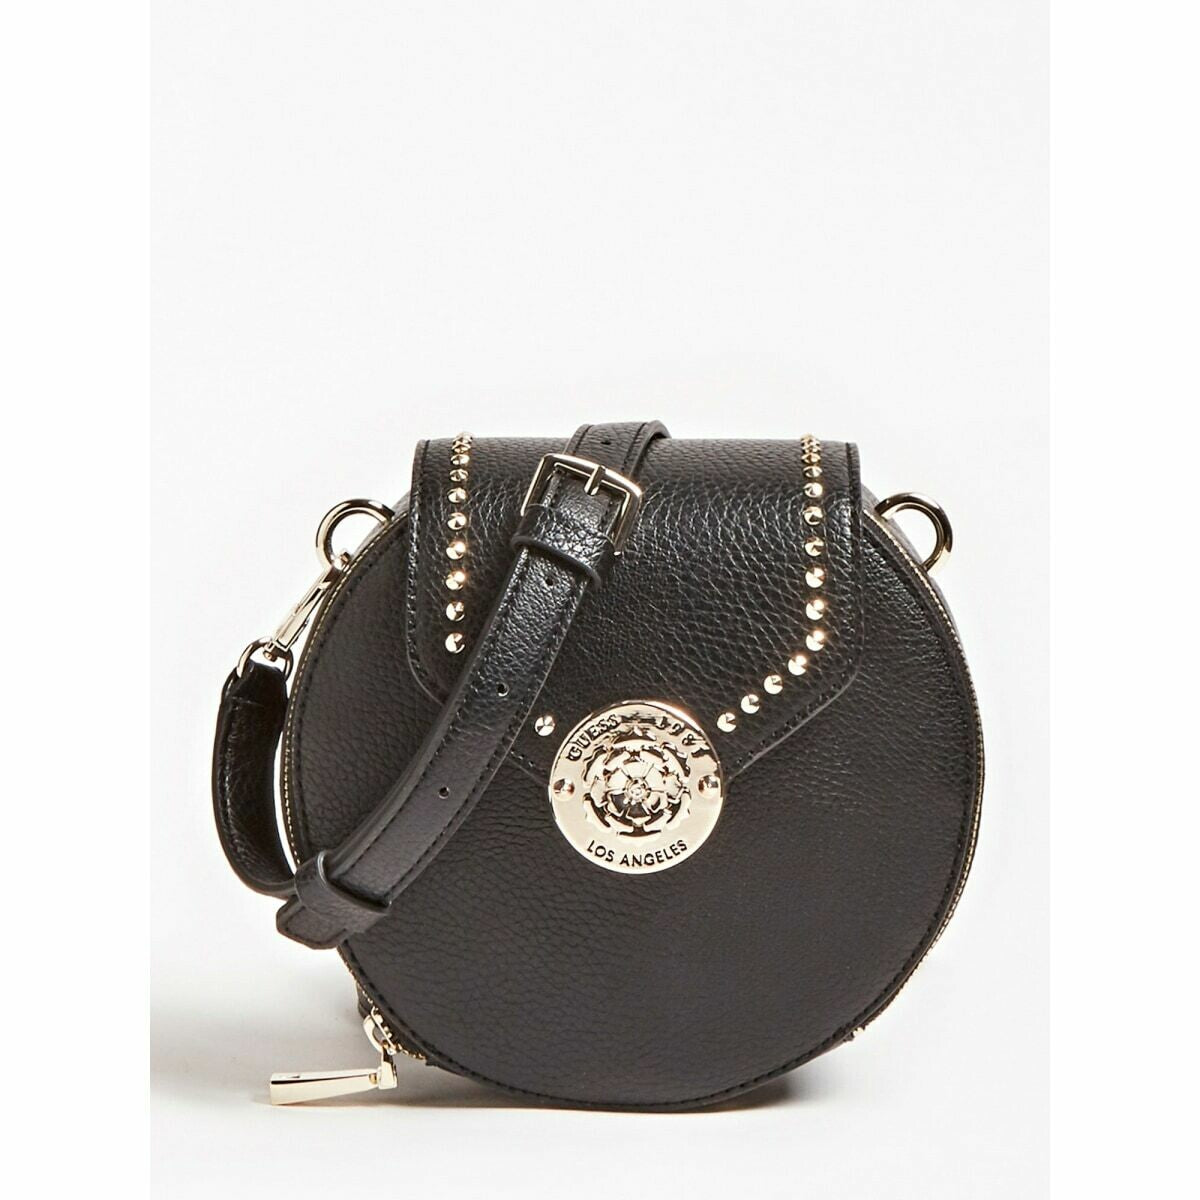 Guess Belle isle round bag black